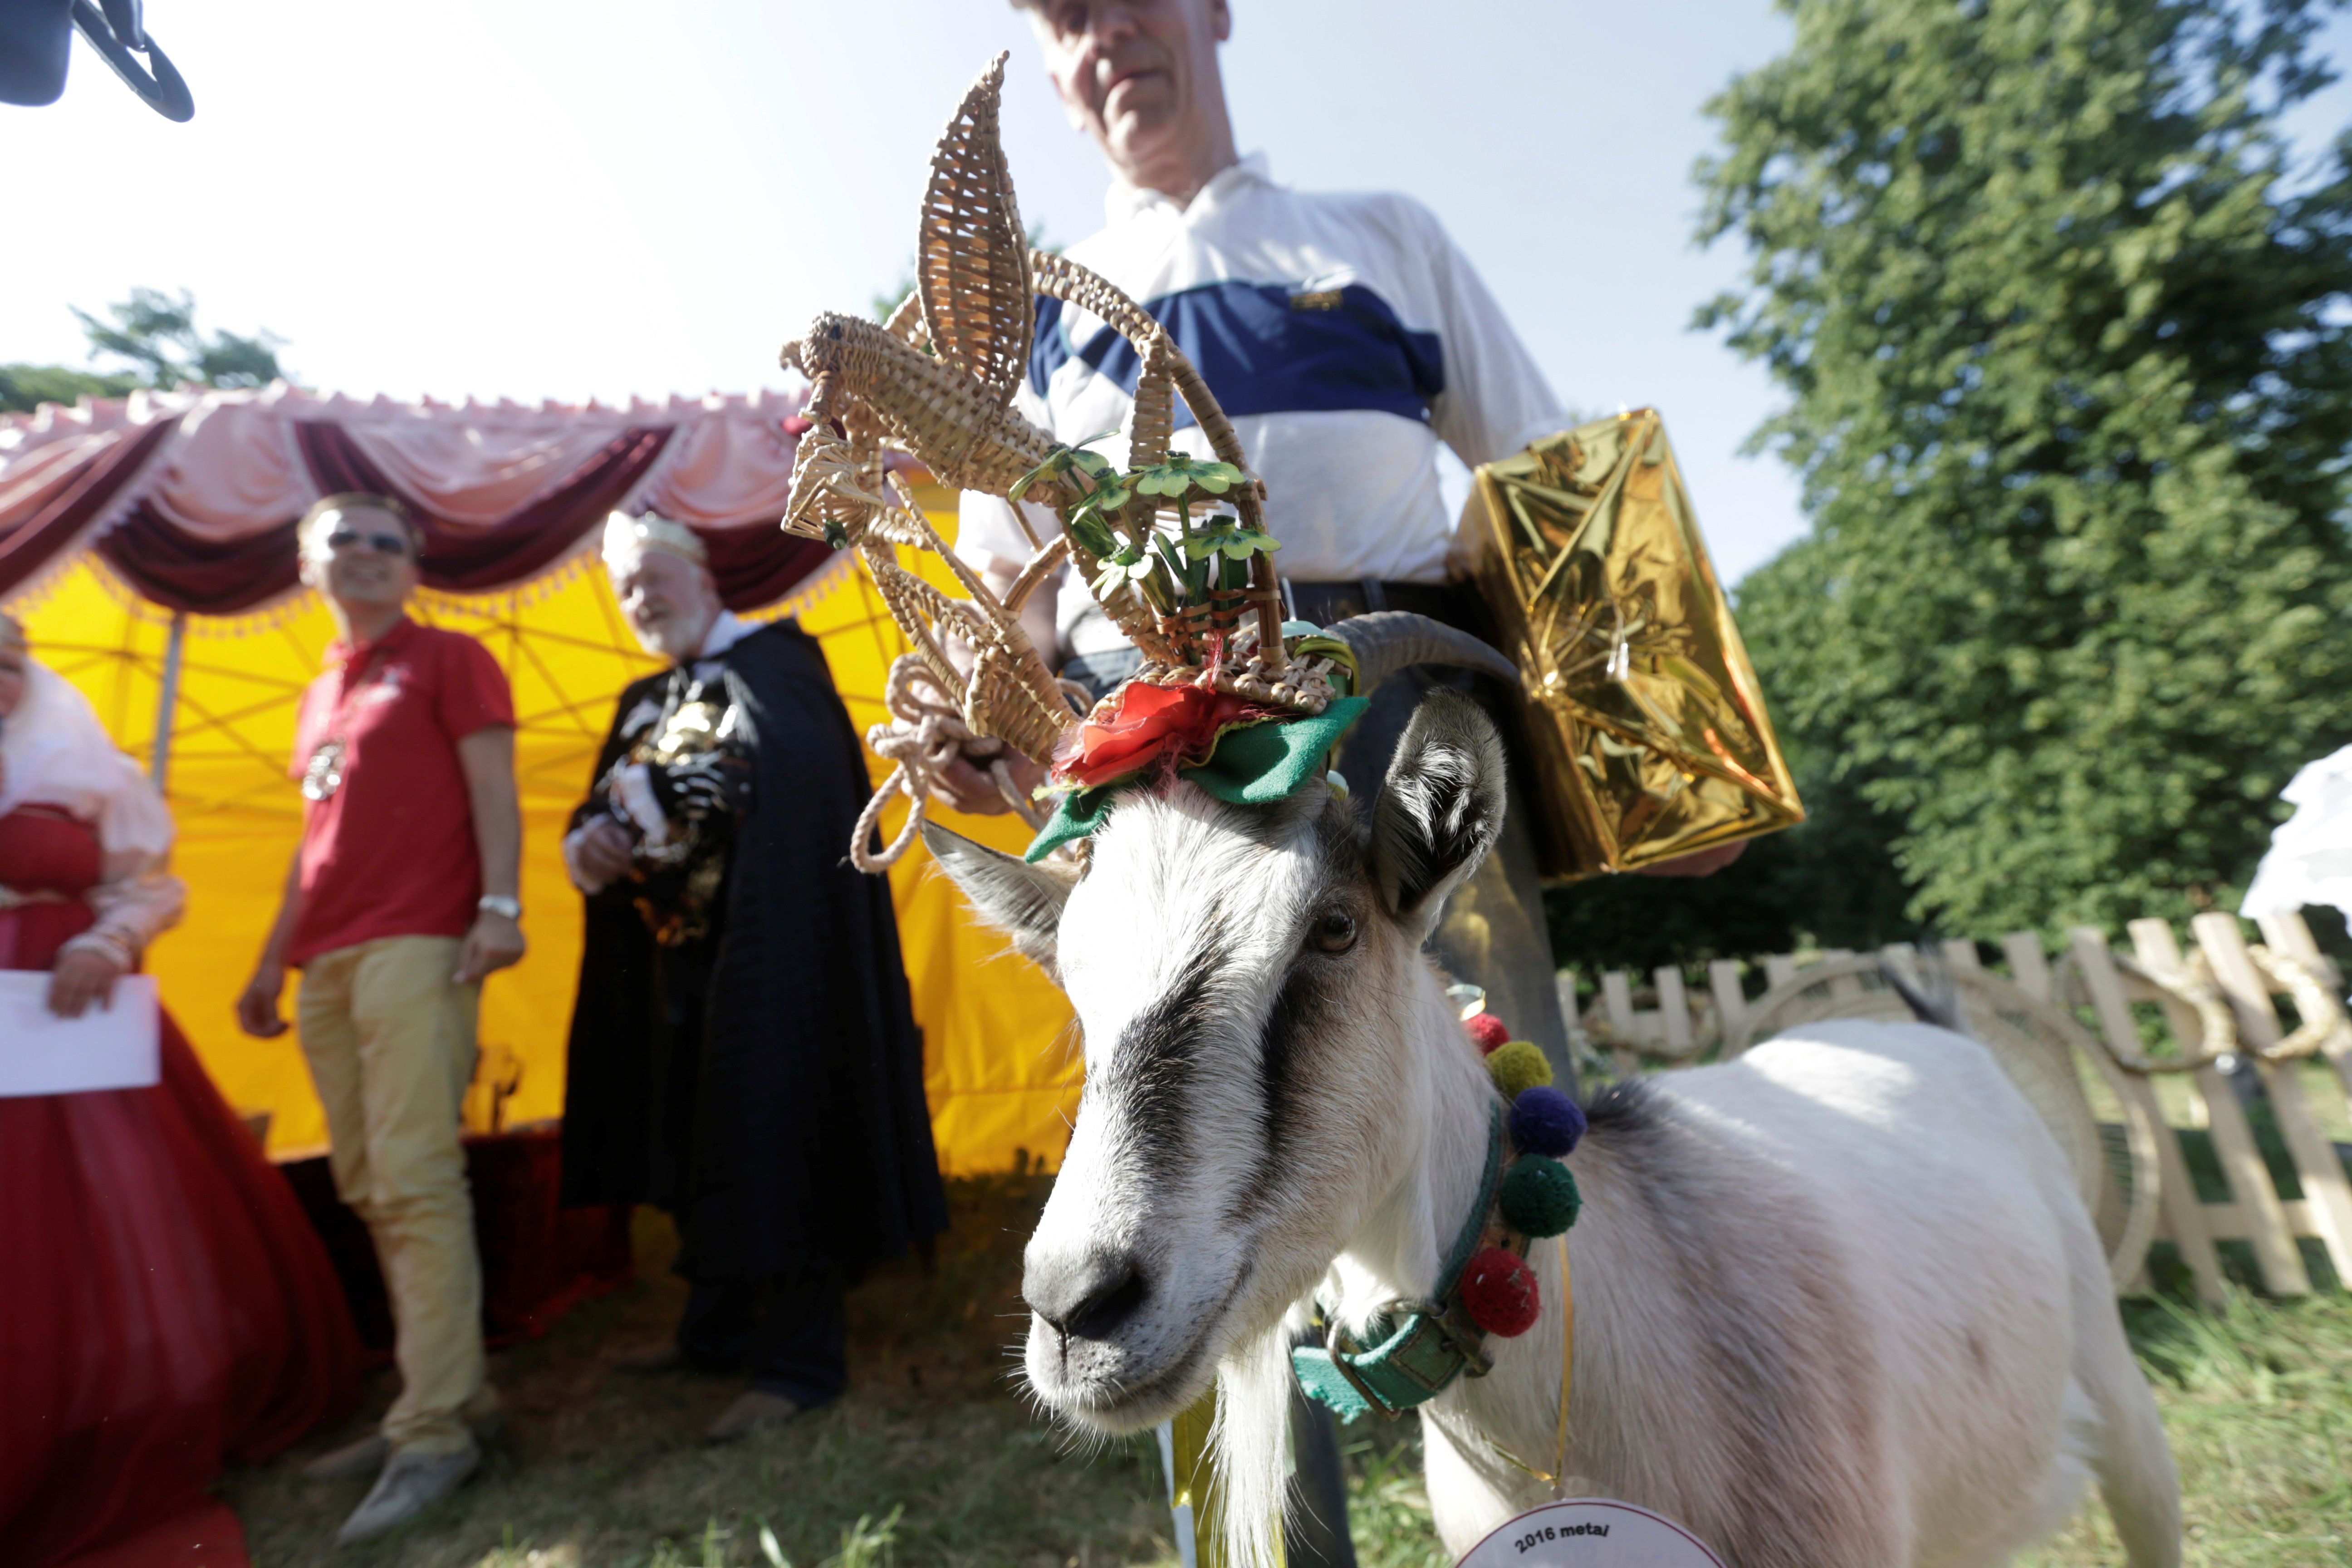 Goat owner Ferdinandas Petkevicius pose for a picture with goat winner Demyte, during goat beauty pageant in Ramygala, Lithuania, June 26, 2016. REUTERS/Ints Kalnins